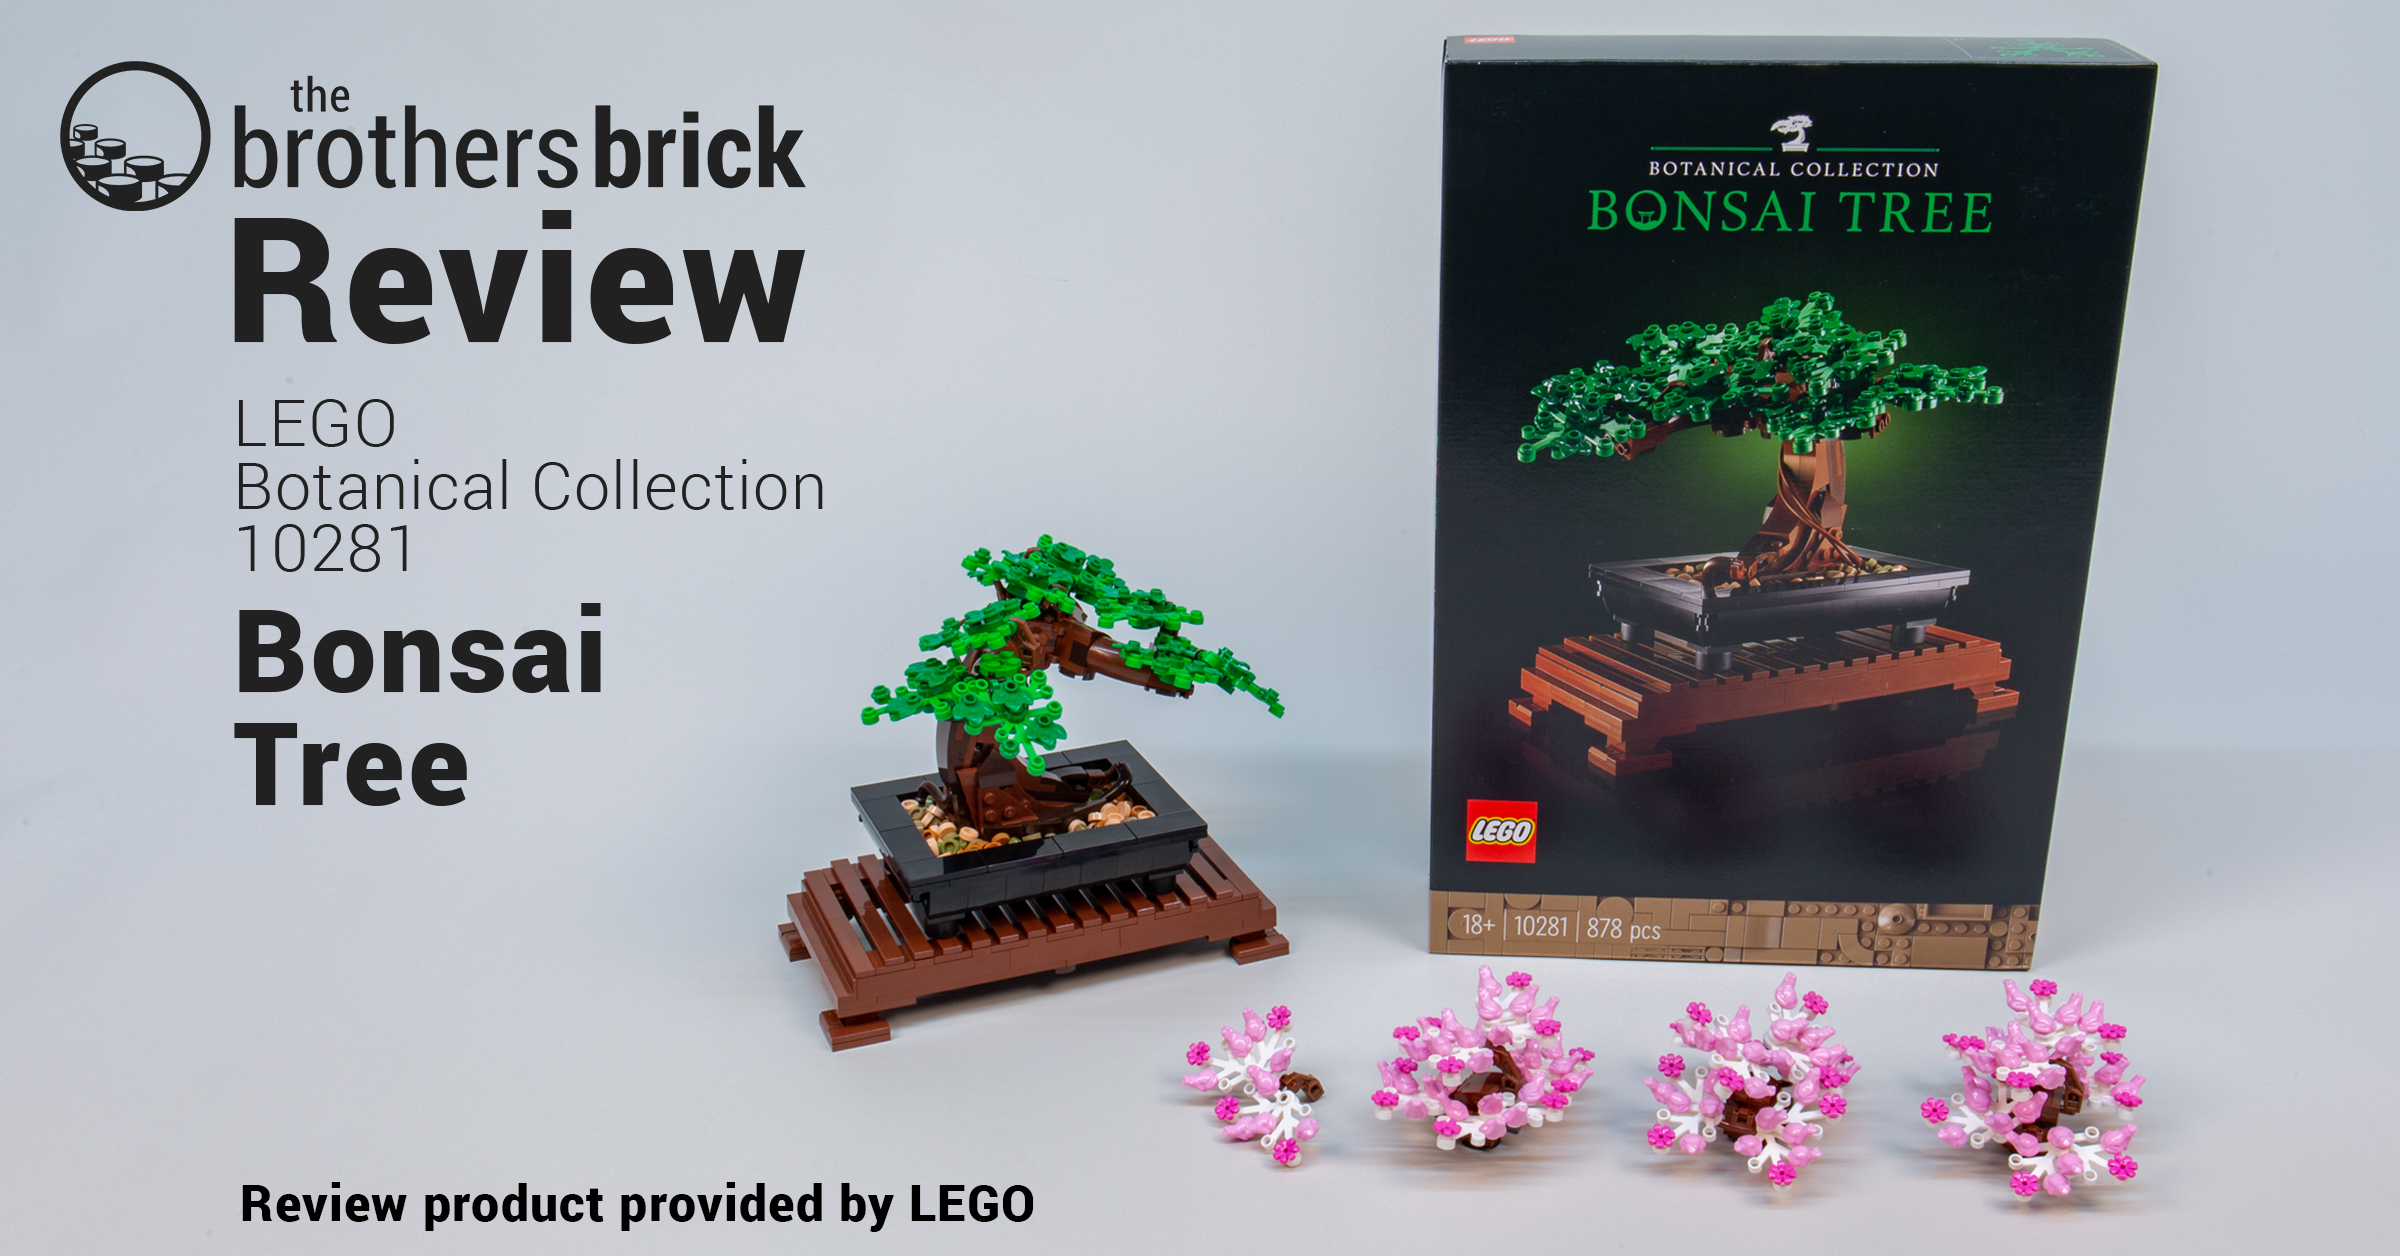 Lego 10281 Bonsai Tree From The Botanical Collection Review The Brothers Brick The Brothers Brick